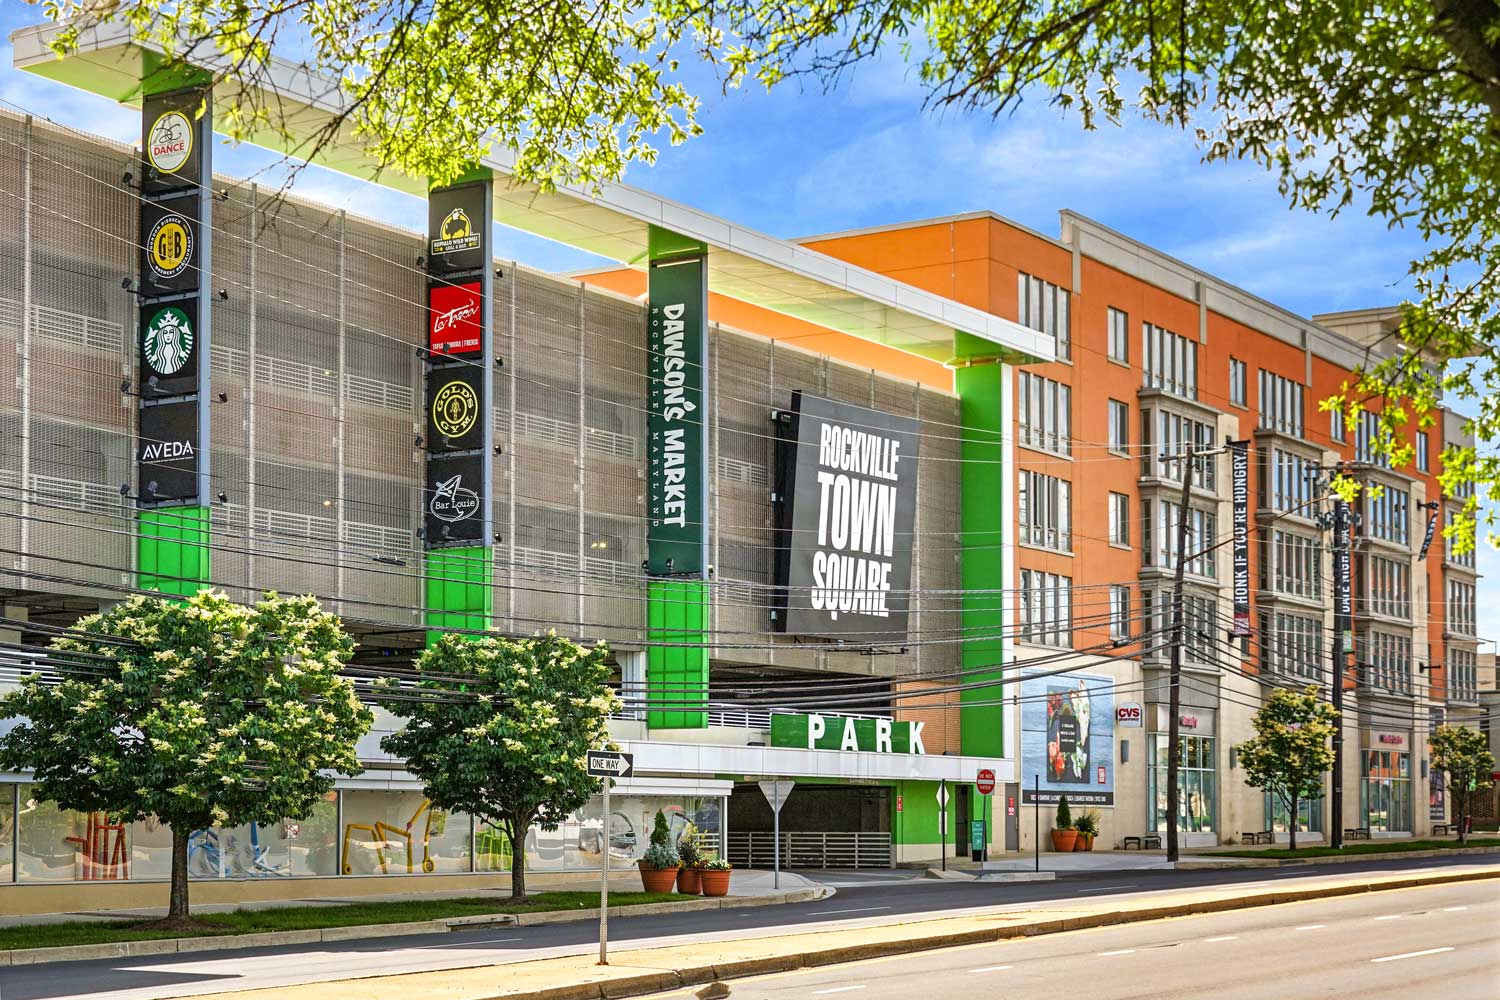 10 minutes to shopping, dining, entertainment at Rockville Town Square